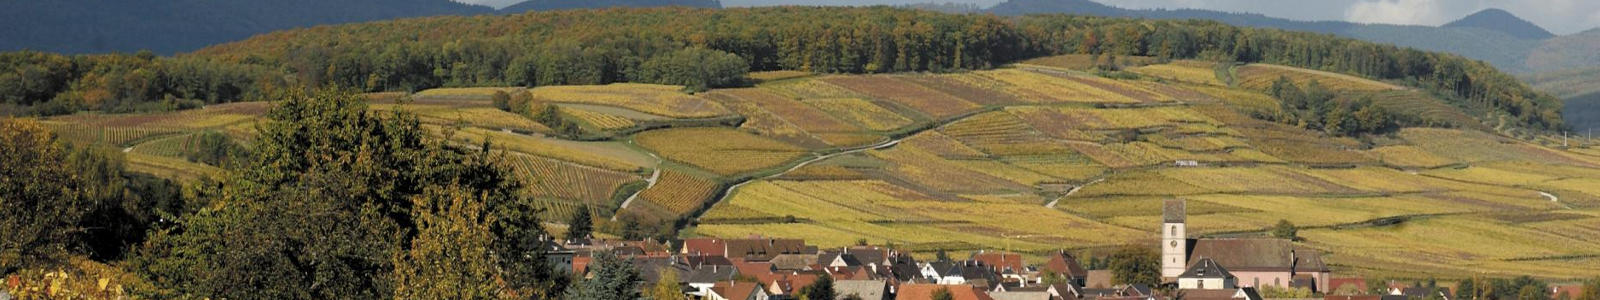 Alsace Grand Cru Pfingstberg